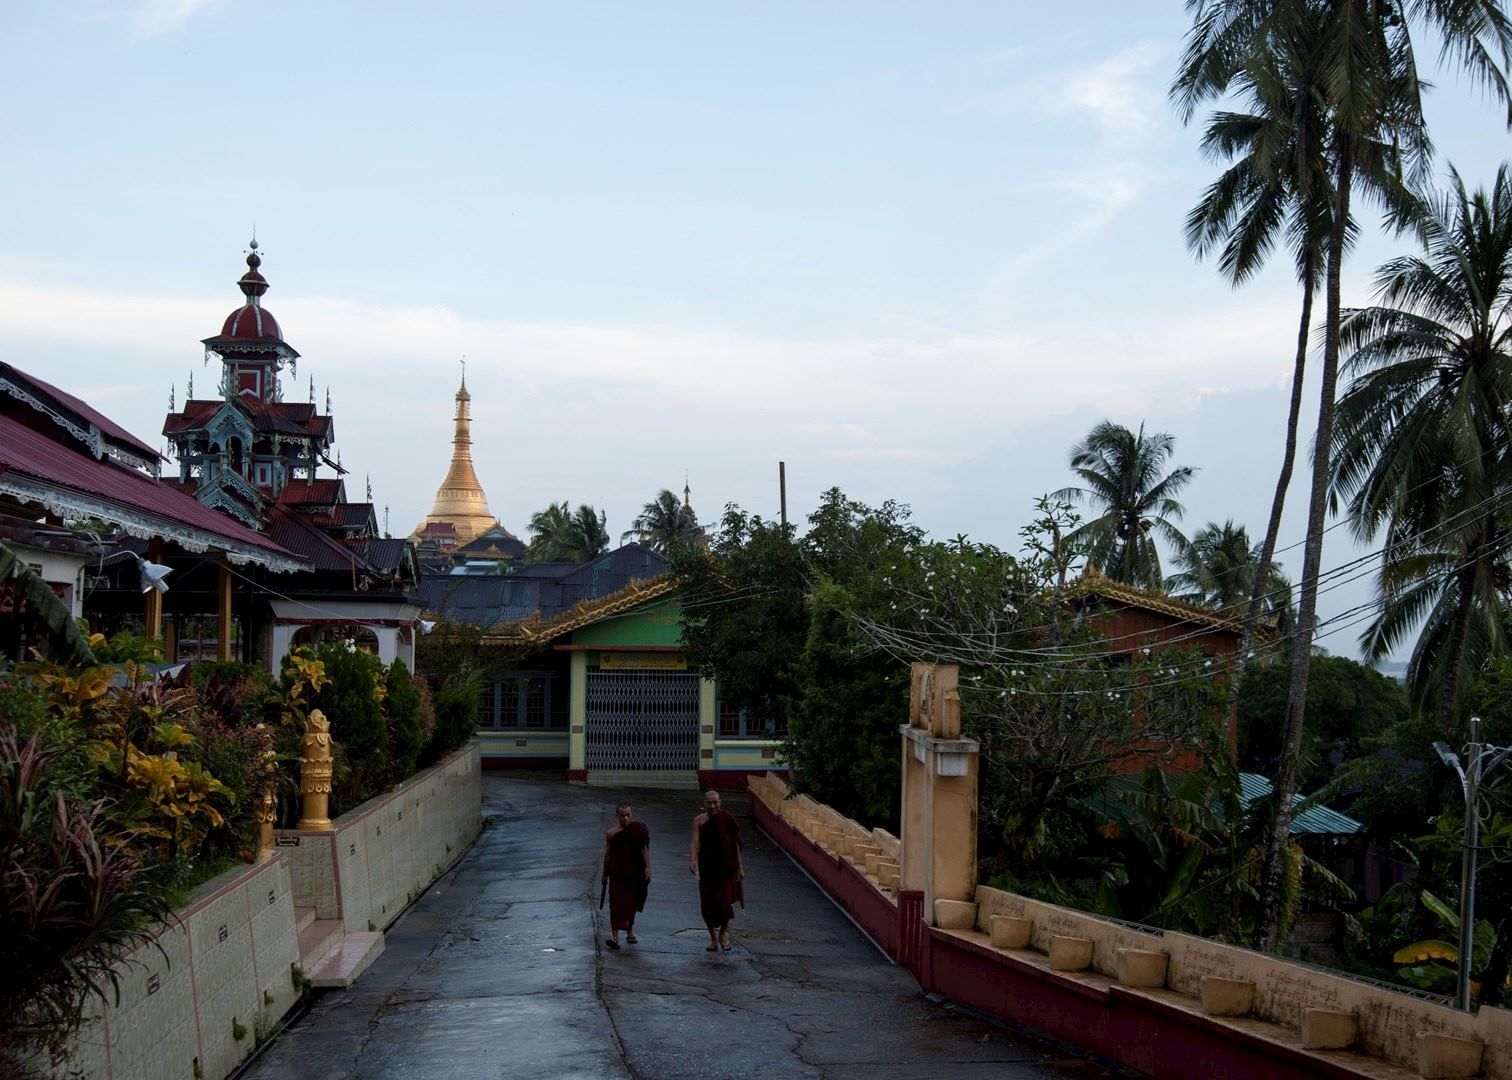 i moulmein Mawlamyine (moulmein) is just one of the places you could visit on your tailor-made trip to burma let audley help you to create your perfect itinerary.